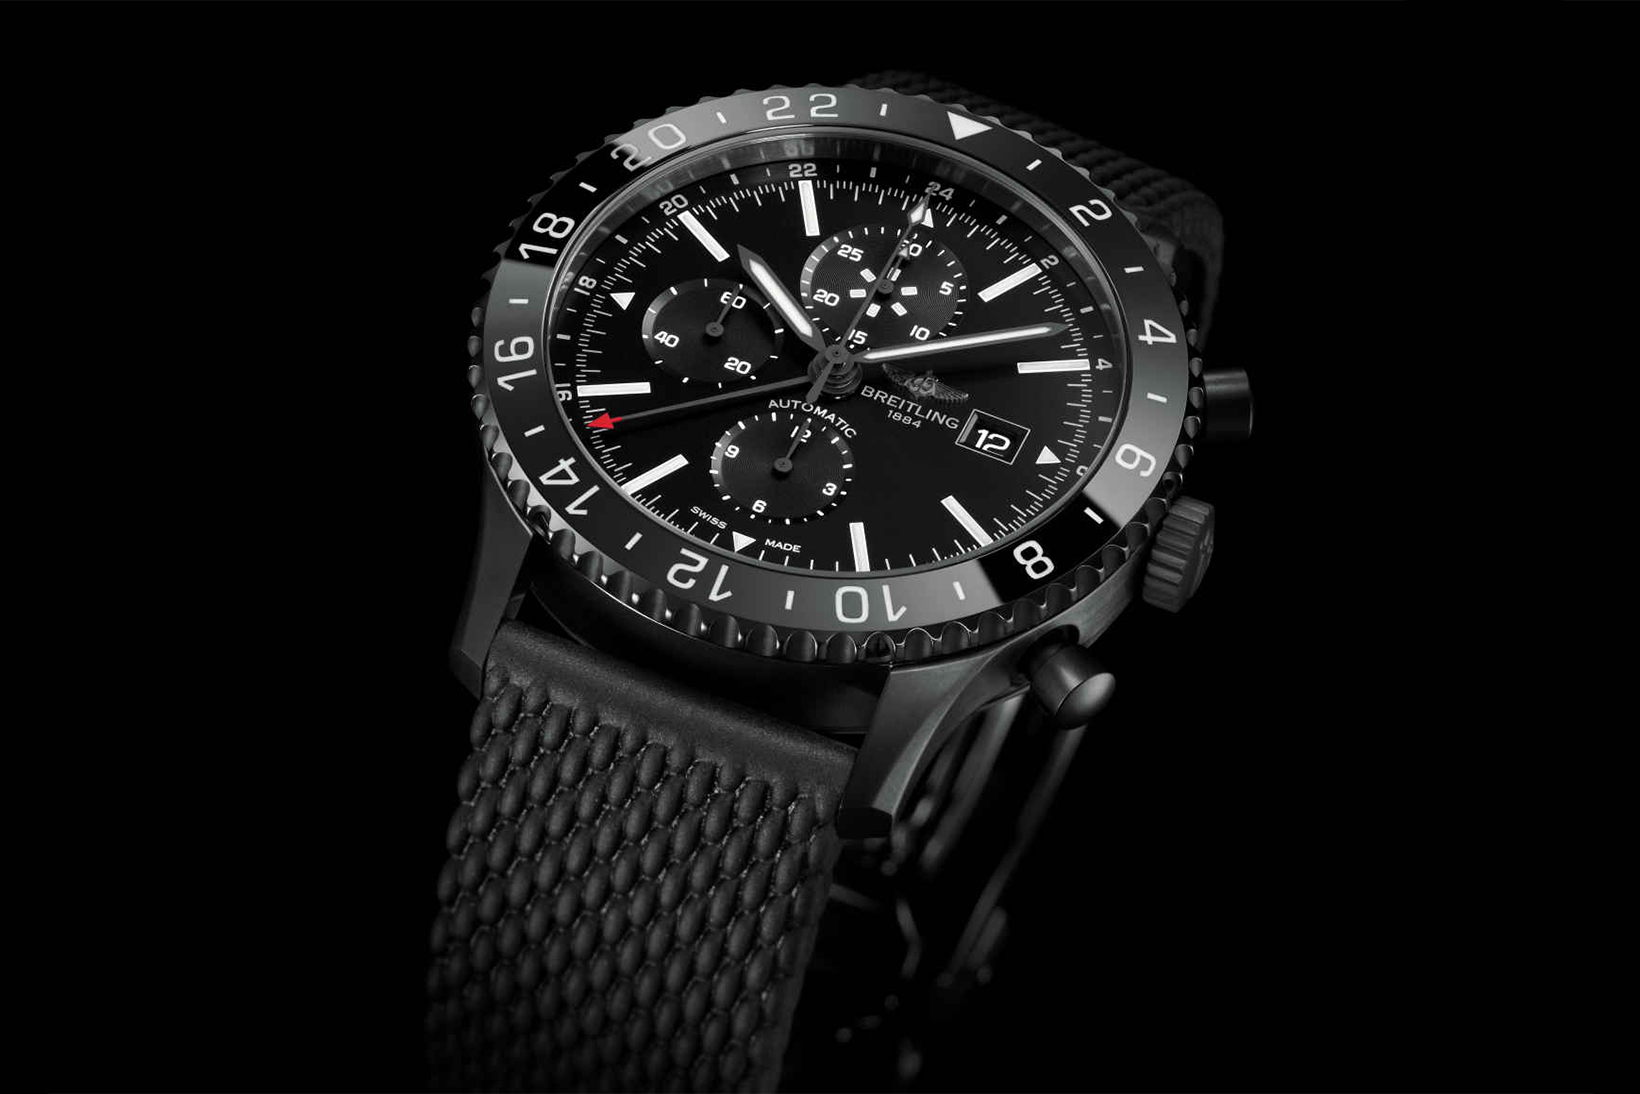 Breitling's Chronoliner Gets the Blacksteel Treatment